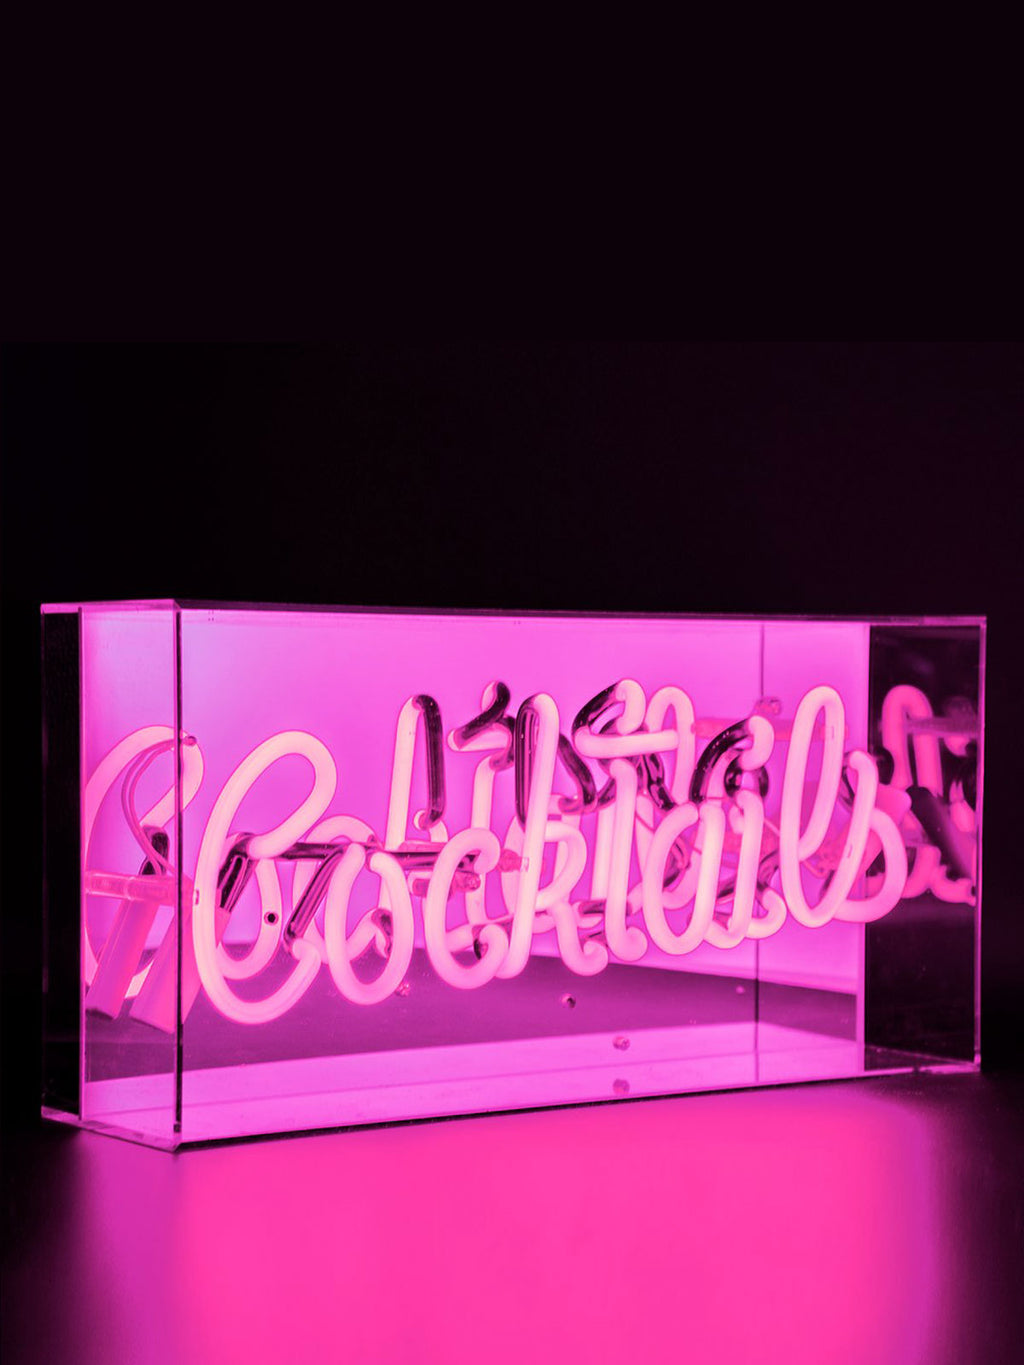 'Cocktails' Acrylic Neon Light Box